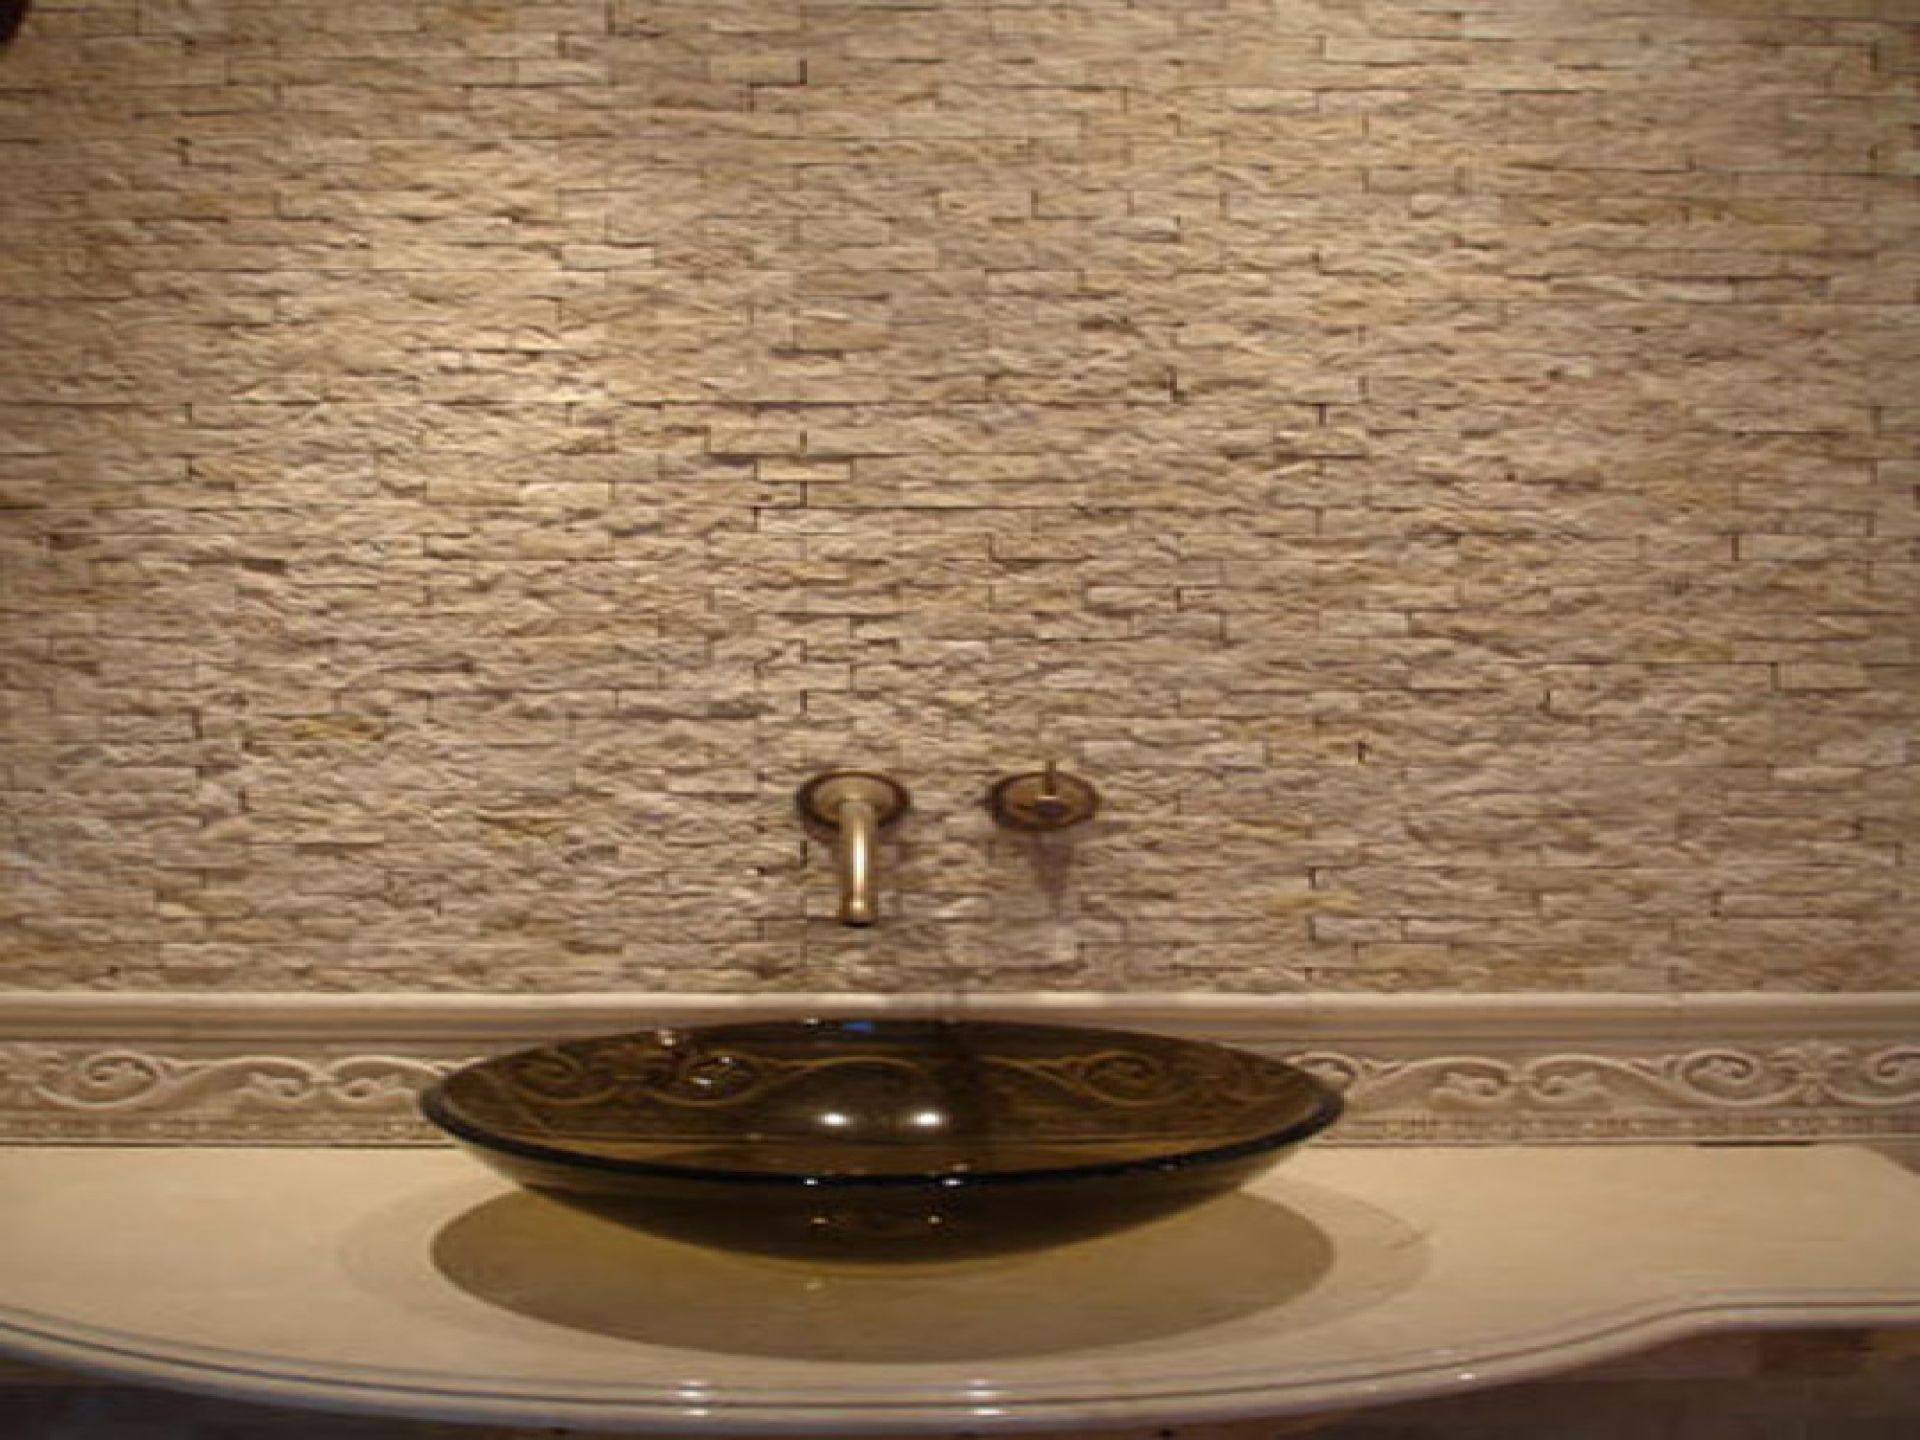 Stone tile bathroom gallery natural stone bathroom tiles uk stone tile bathroom gallery natural stone bathroom tiles uk with natural stone dailygadgetfo Images